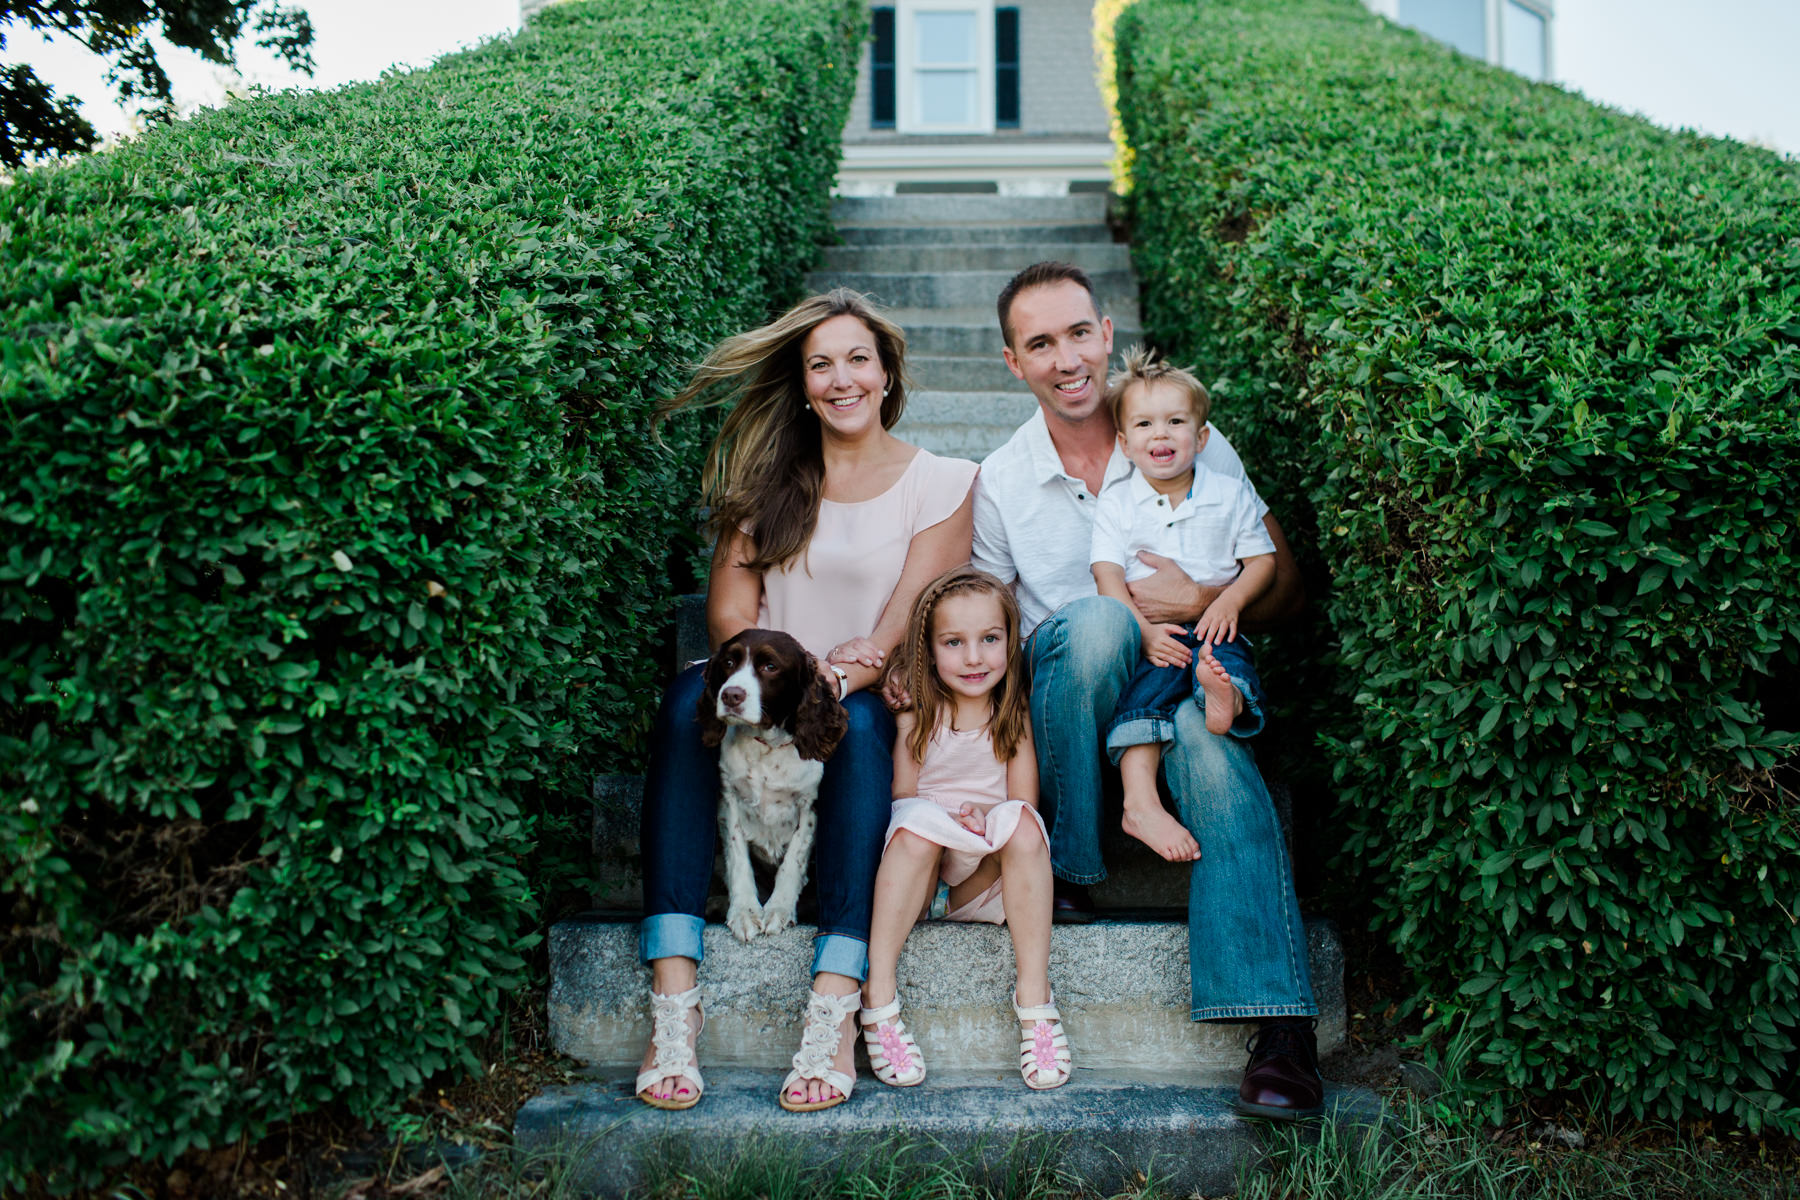 Family-Photography-At-Home-Urbsn-Portland-Maine-3938